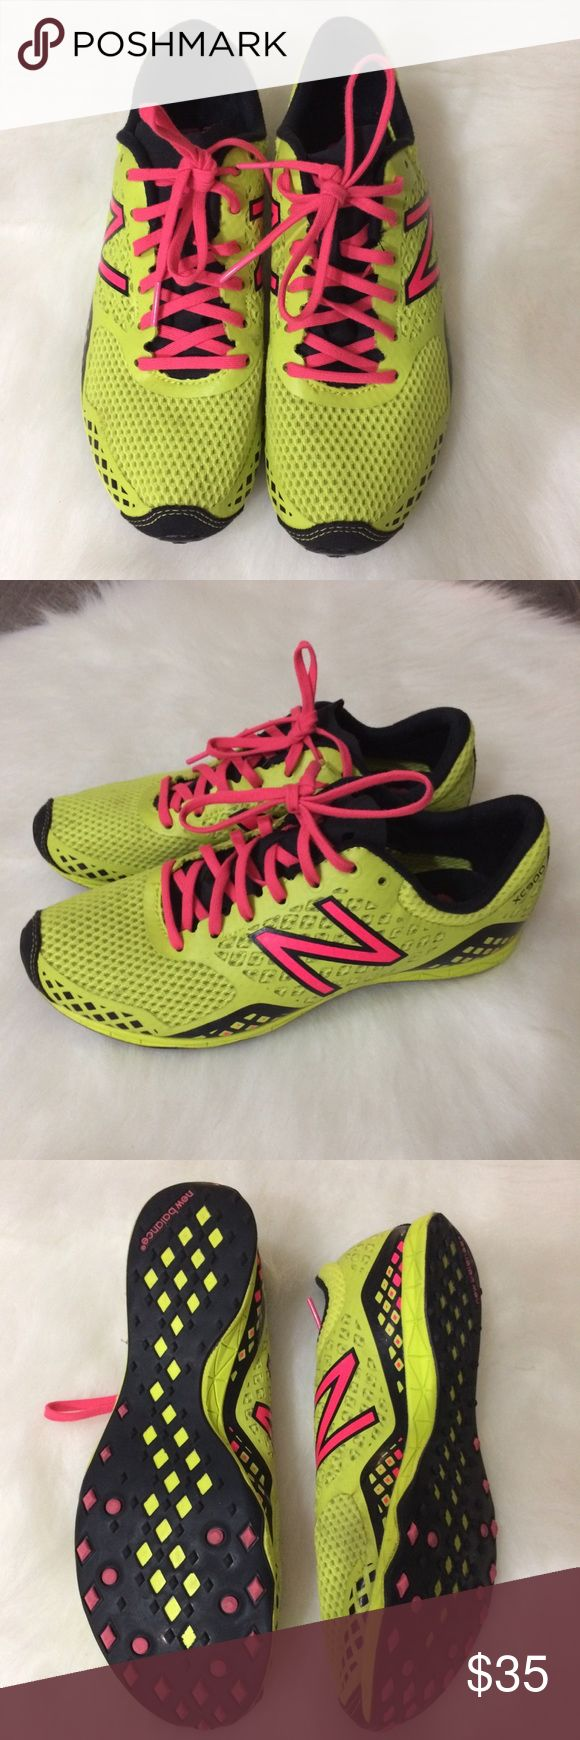 Women's new balance neon running shoes size 7.5 Good used condition. Some ware New Balance Shoes Sneakers